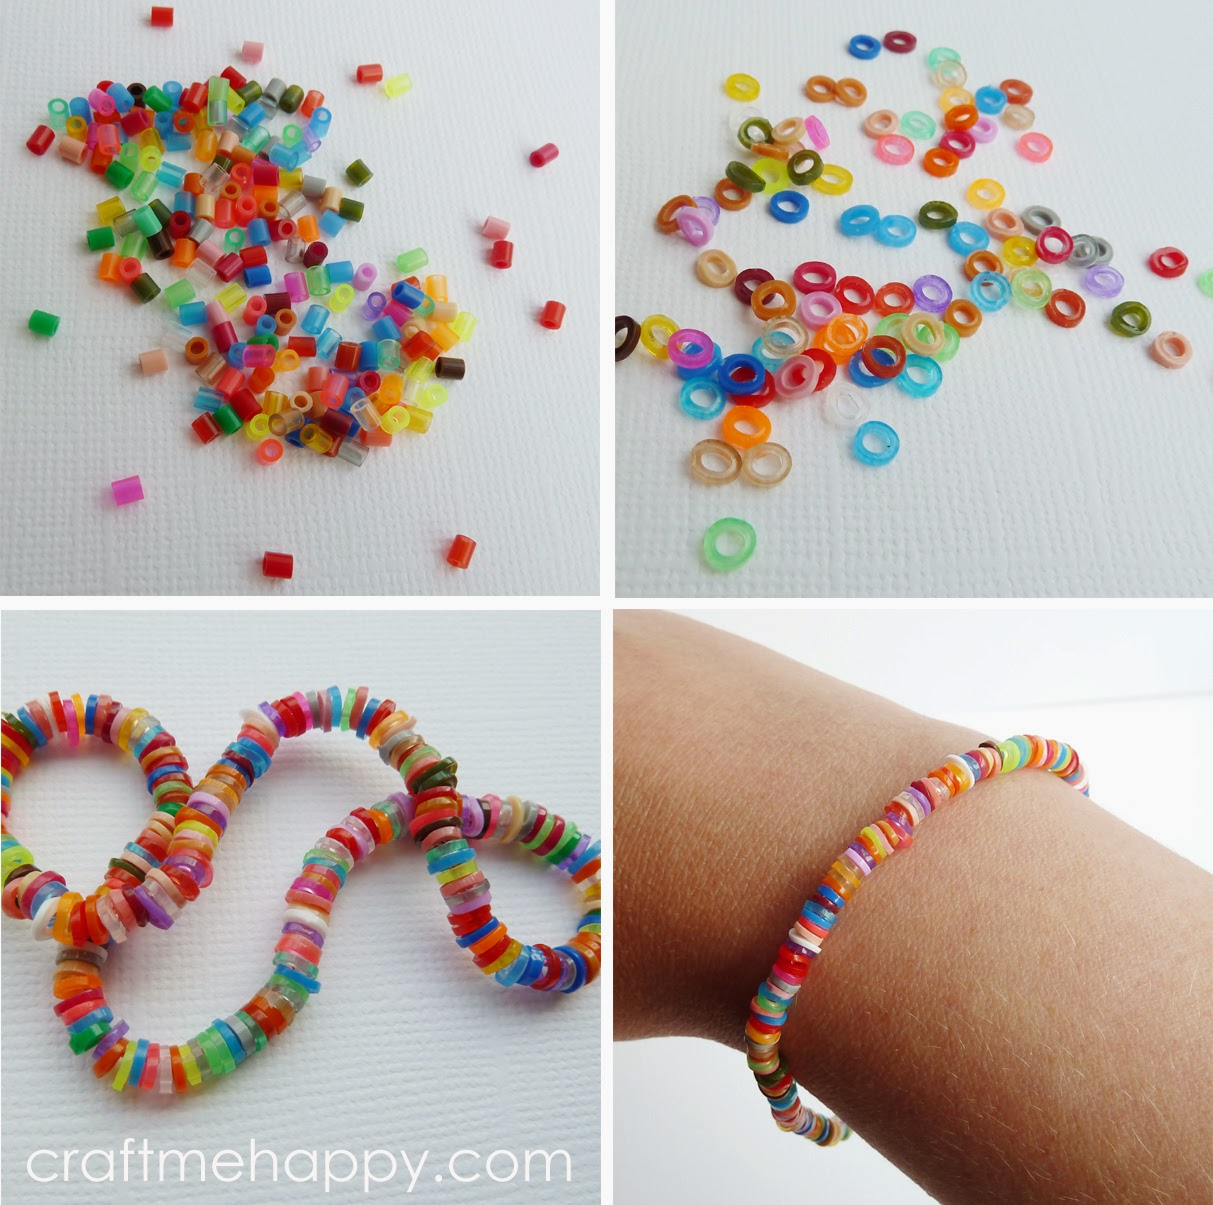 bracelet id making the bead beads perler picture large of